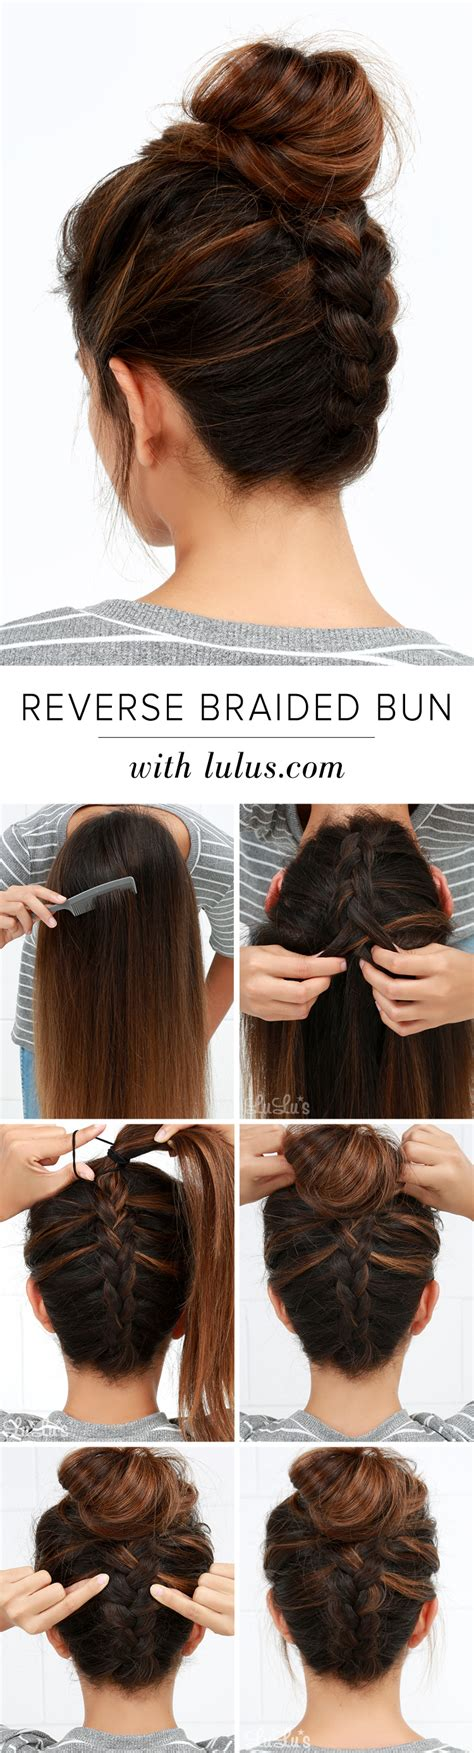 put your hair in a bun with braids lulus how to reverse braided bun hair tutorial lulus